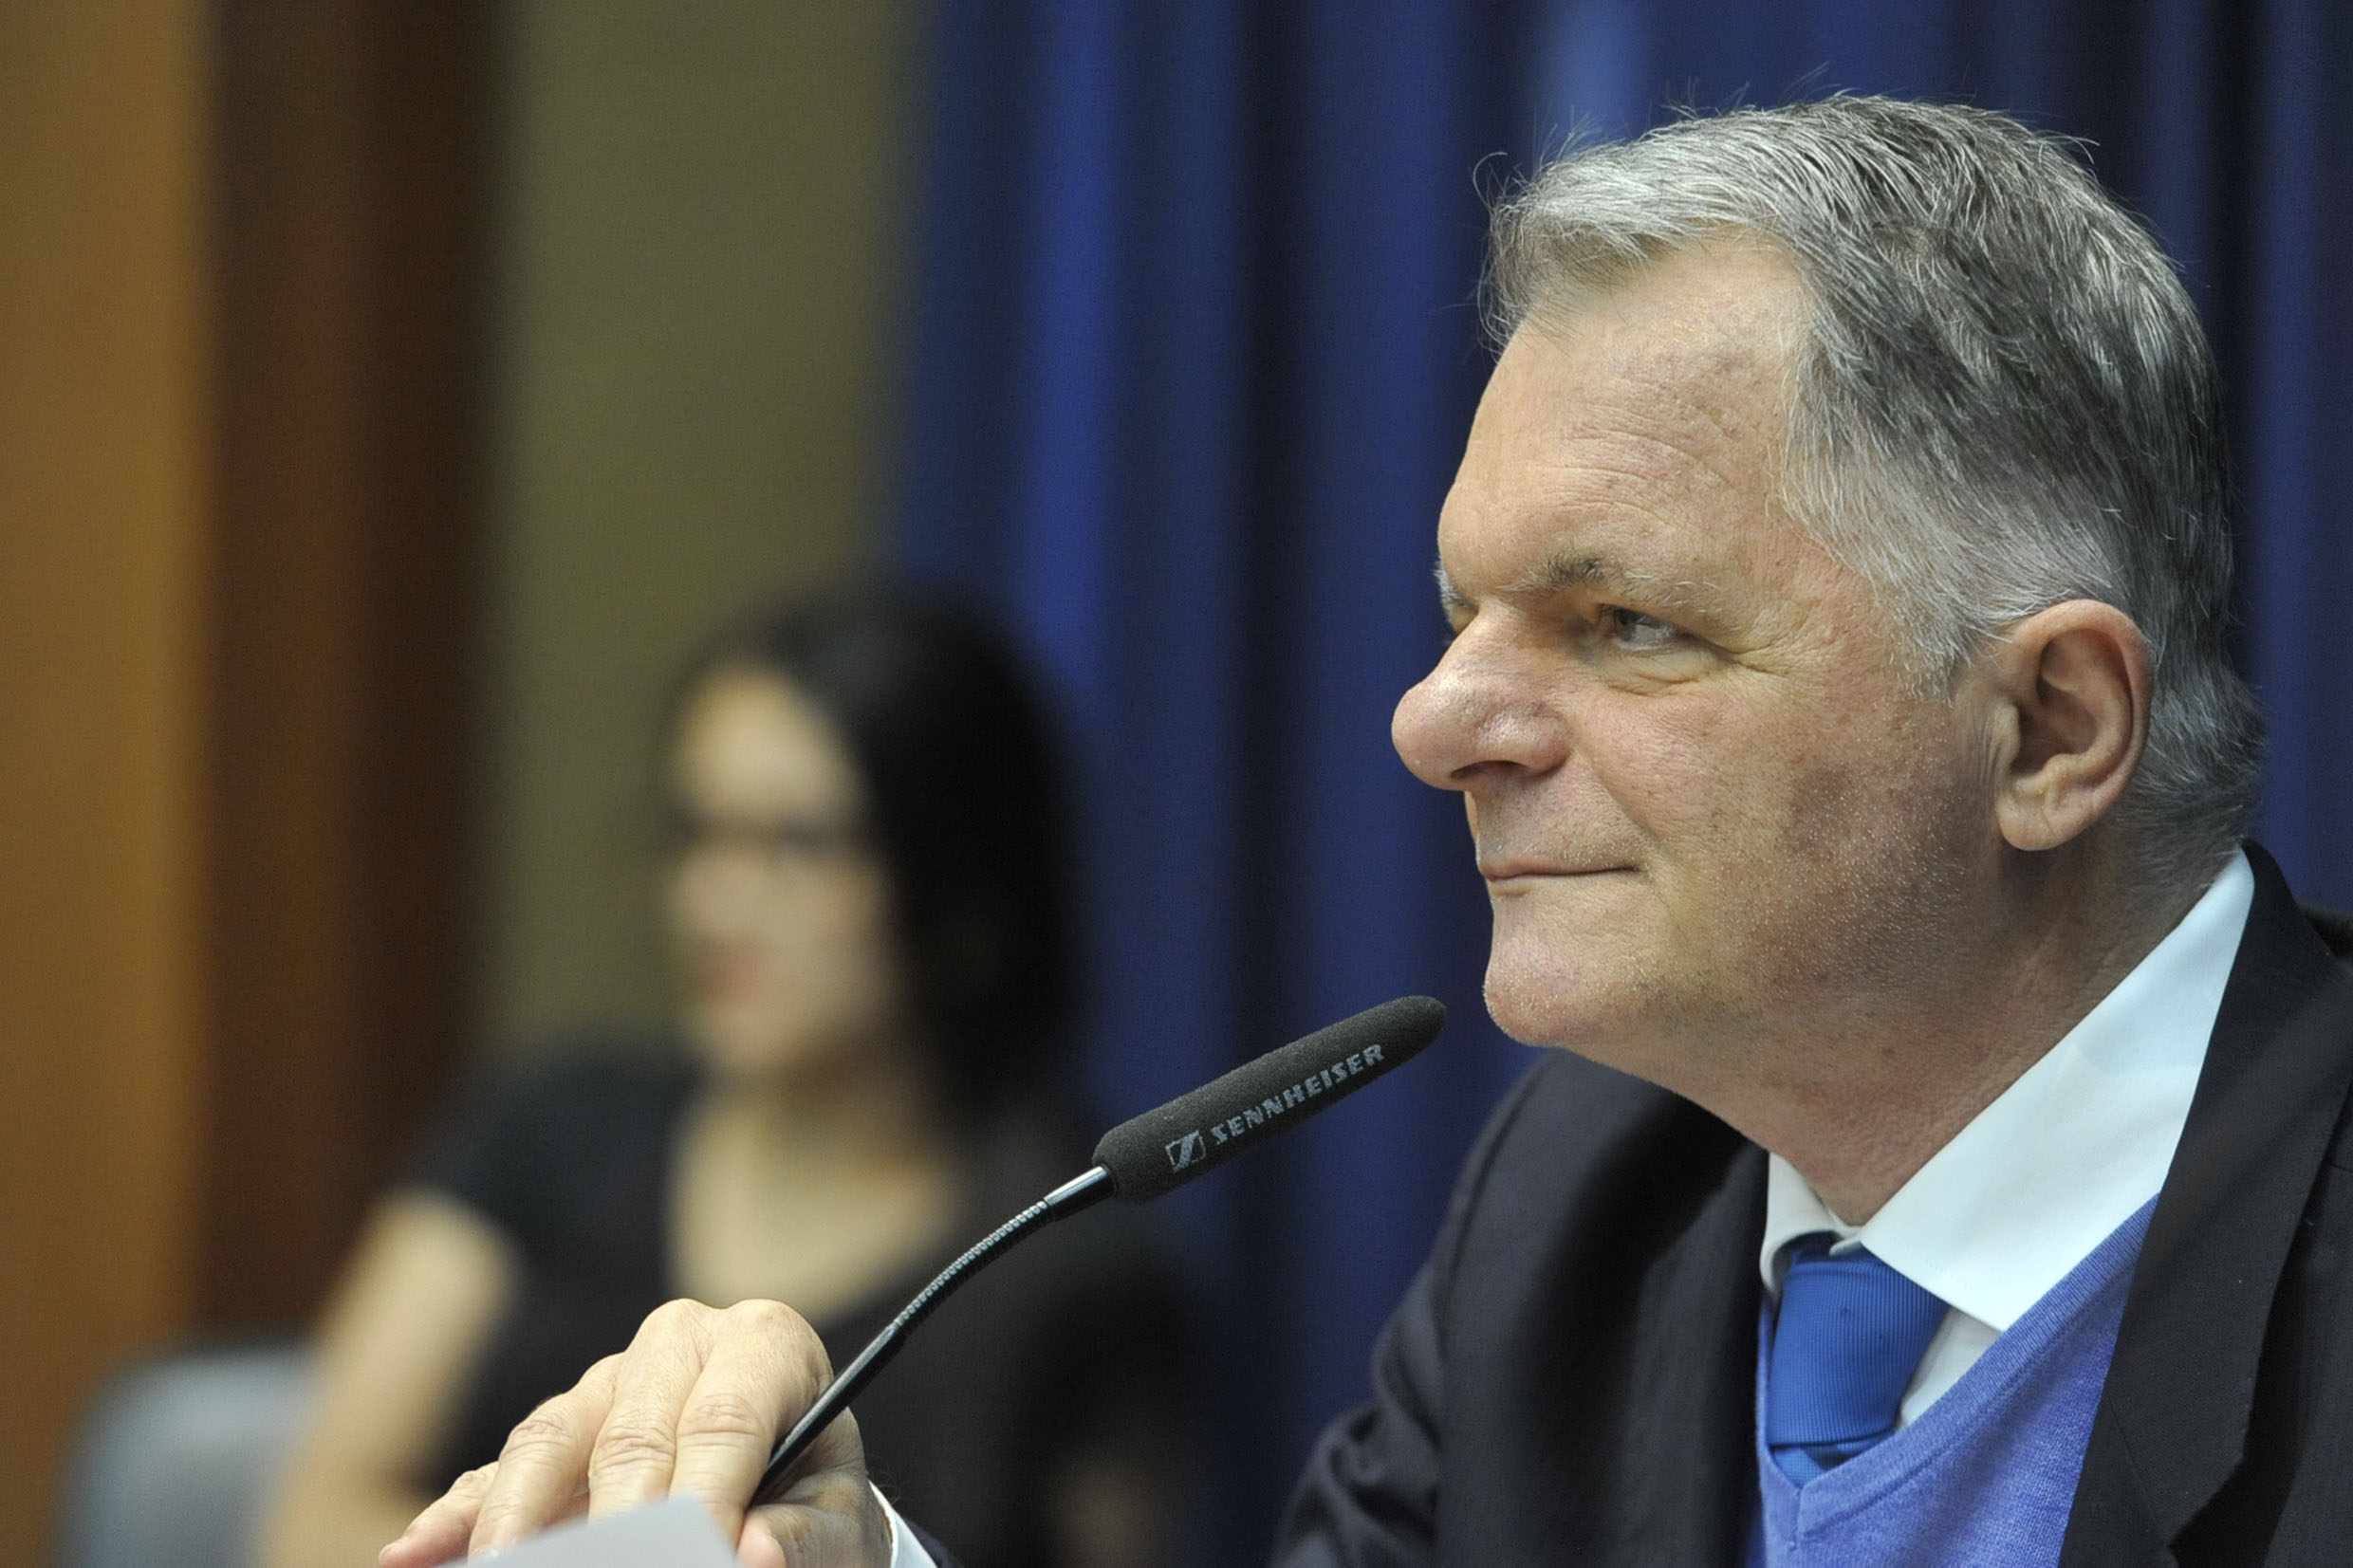 Mauro Bragato preside a comissão<a style='float:right' href='https://www3.al.sp.gov.br/repositorio/noticia/N-08-2019/fg237529.jpg' target=_blank><img src='/_img/material-file-download-white.png' width='14px' alt='Clique para baixar a imagem'></a>